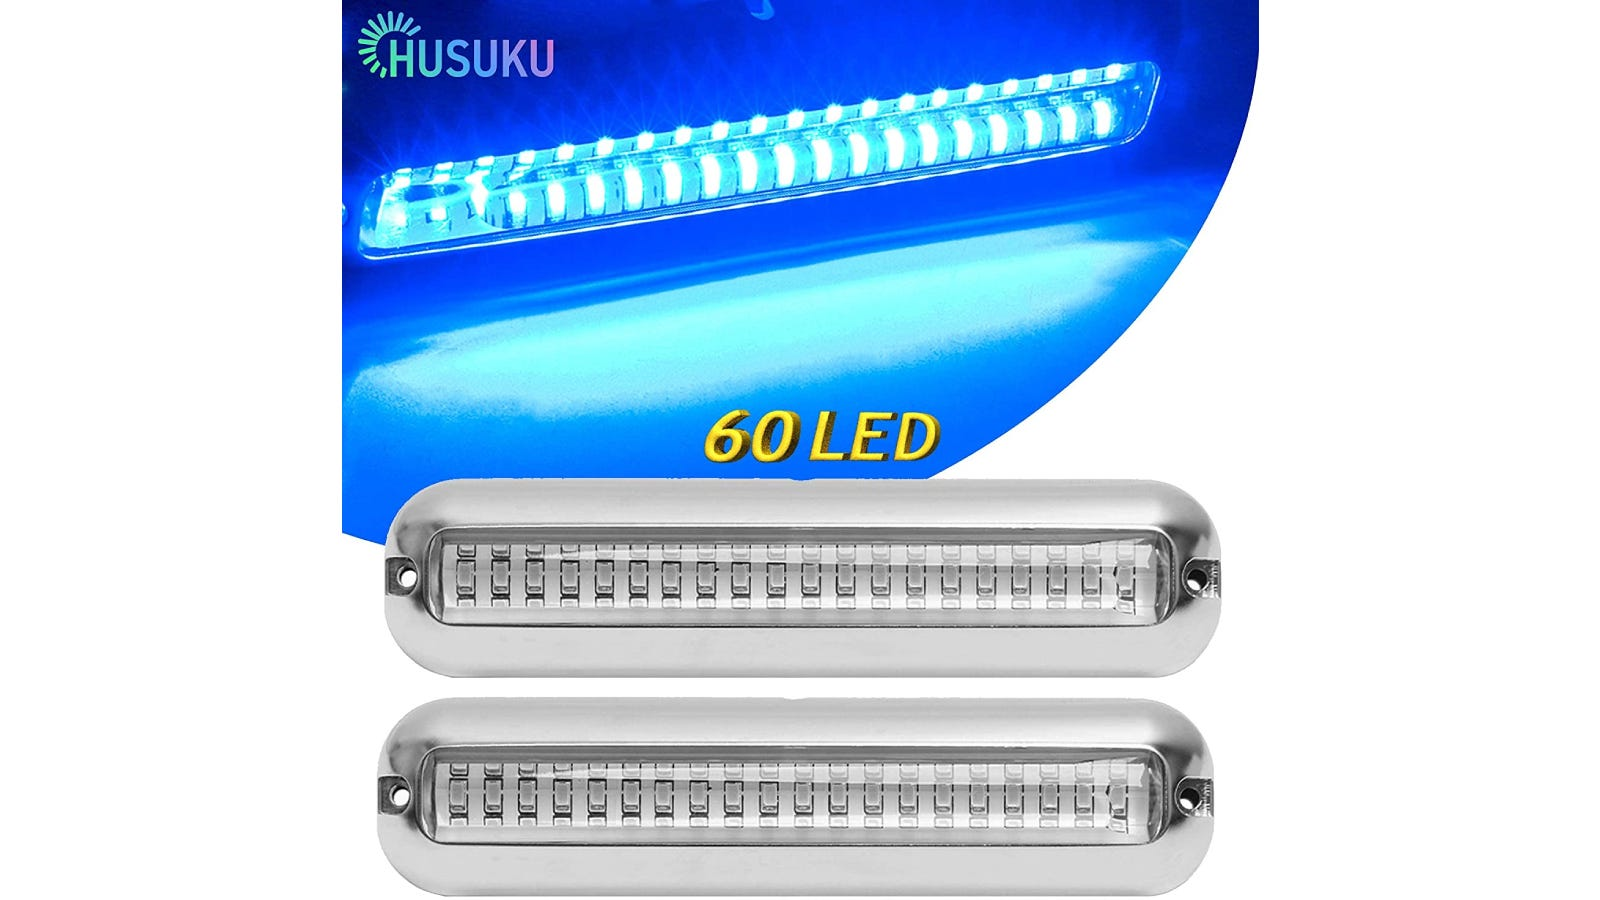 Two long and skinny LED lights for a boat.